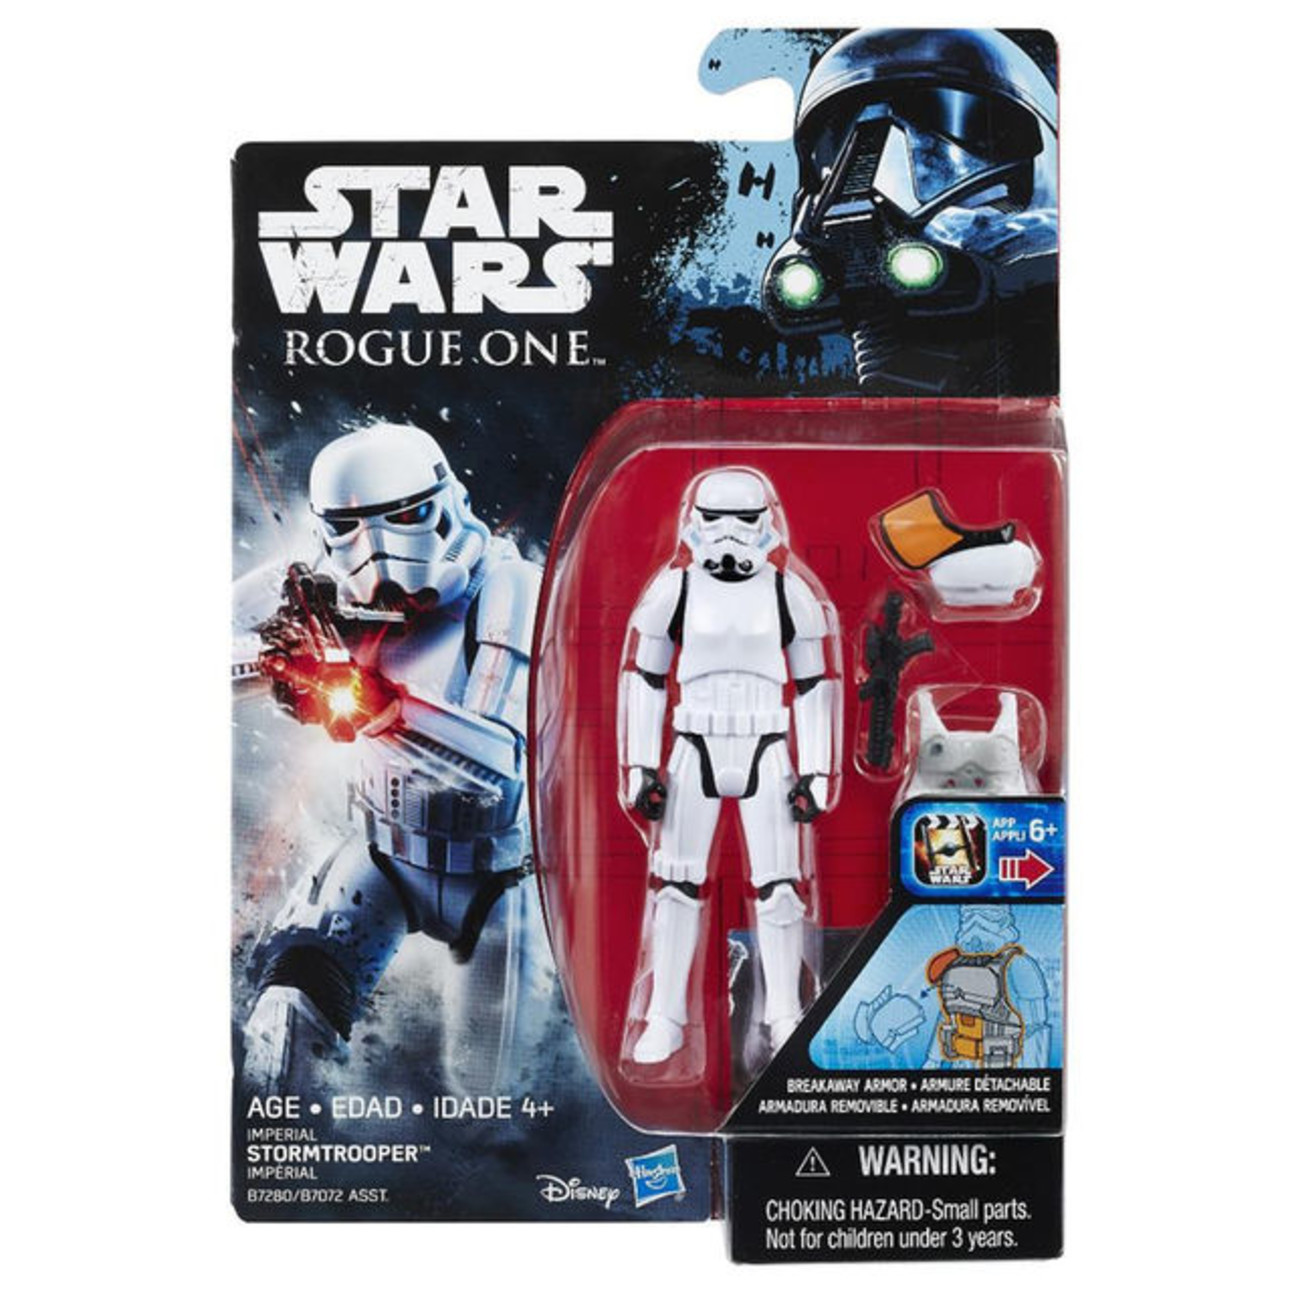 star-wars-rogue-one-3.75-inch-action-figure-imperial-stormtrooper-e3325f7d.pt01.zoom_.jpg